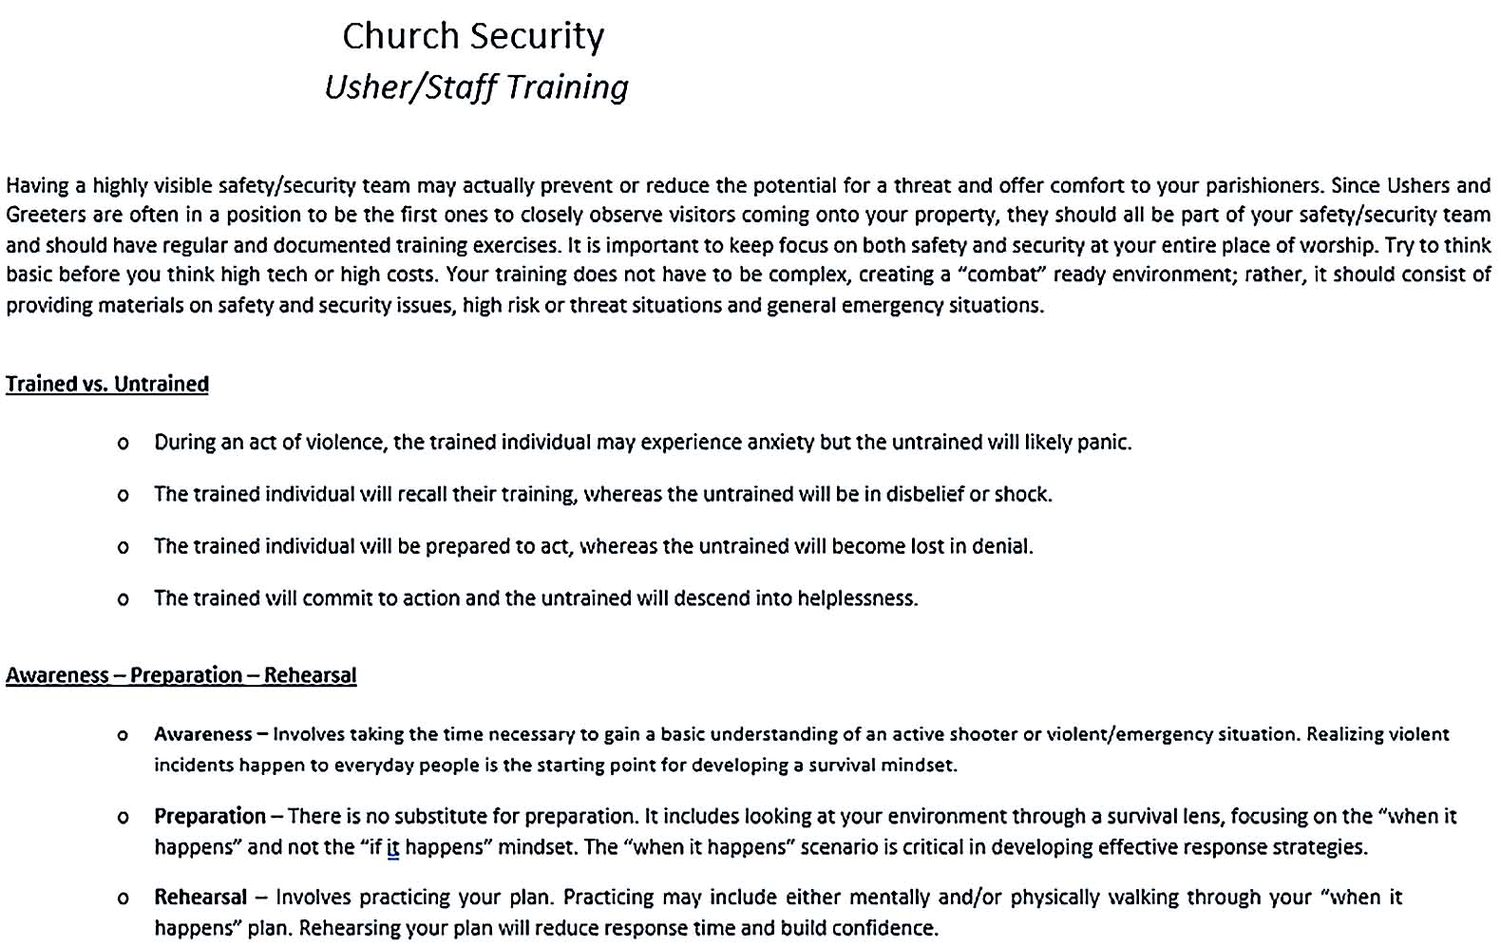 Church Security Plan in PDF